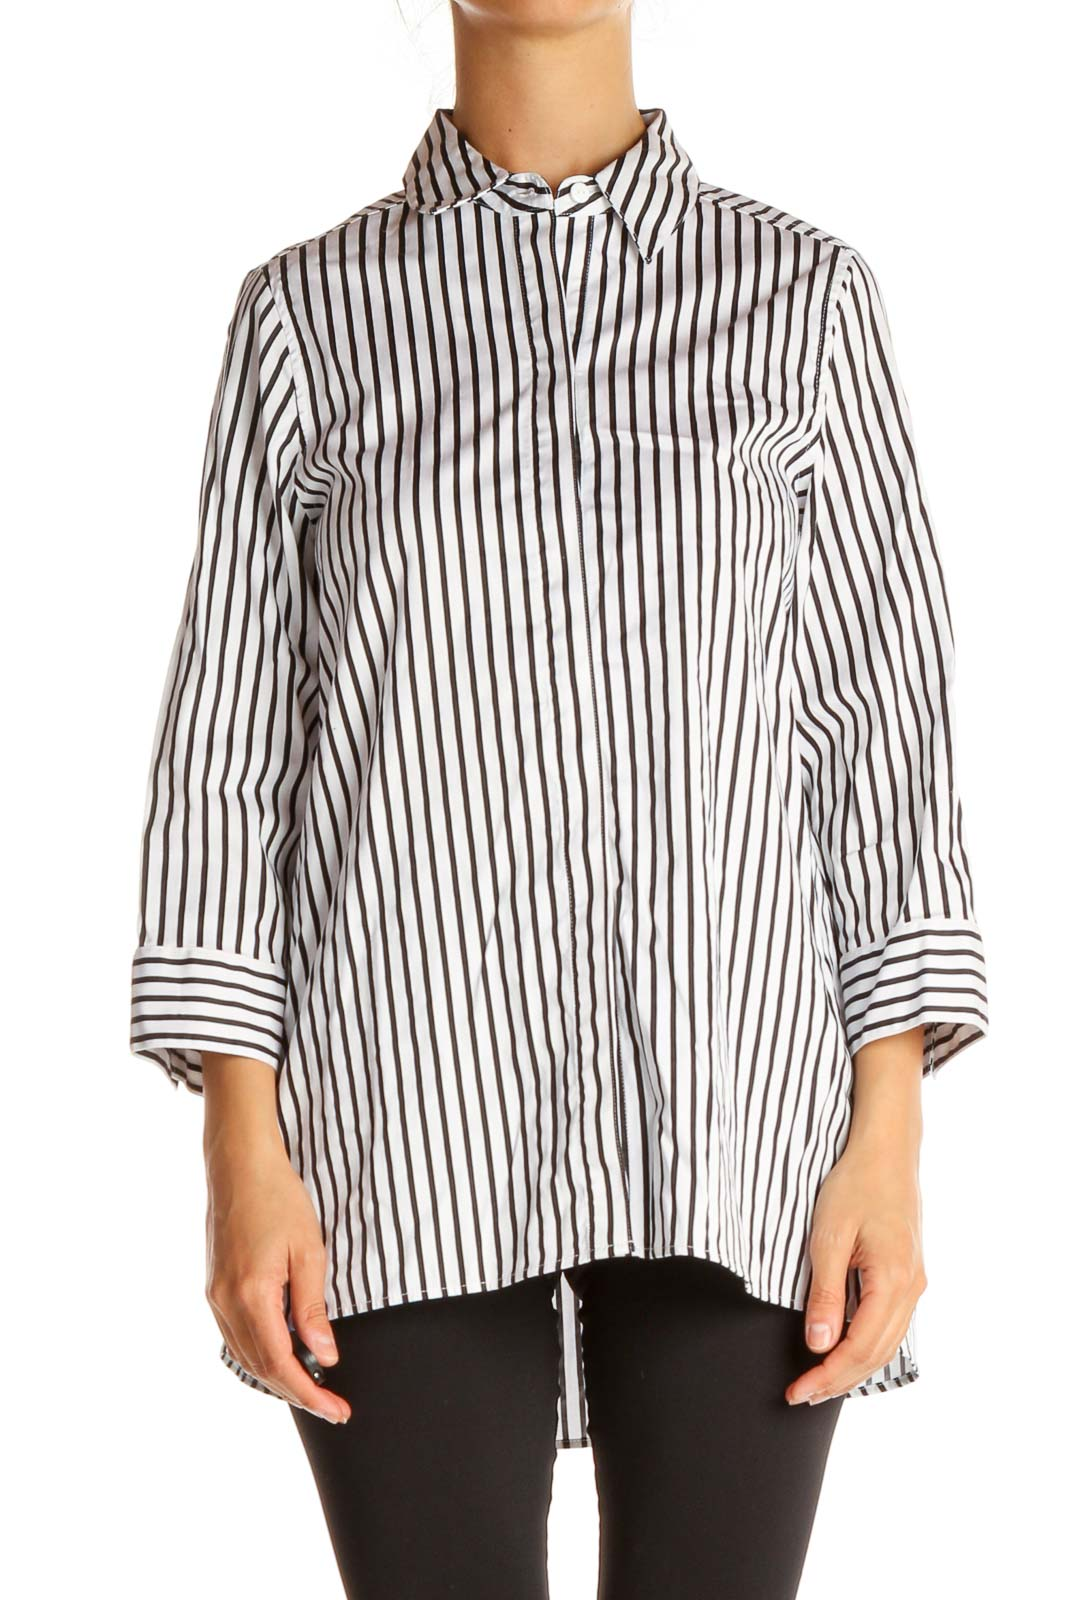 White Striped All Day Wear Shirt Front